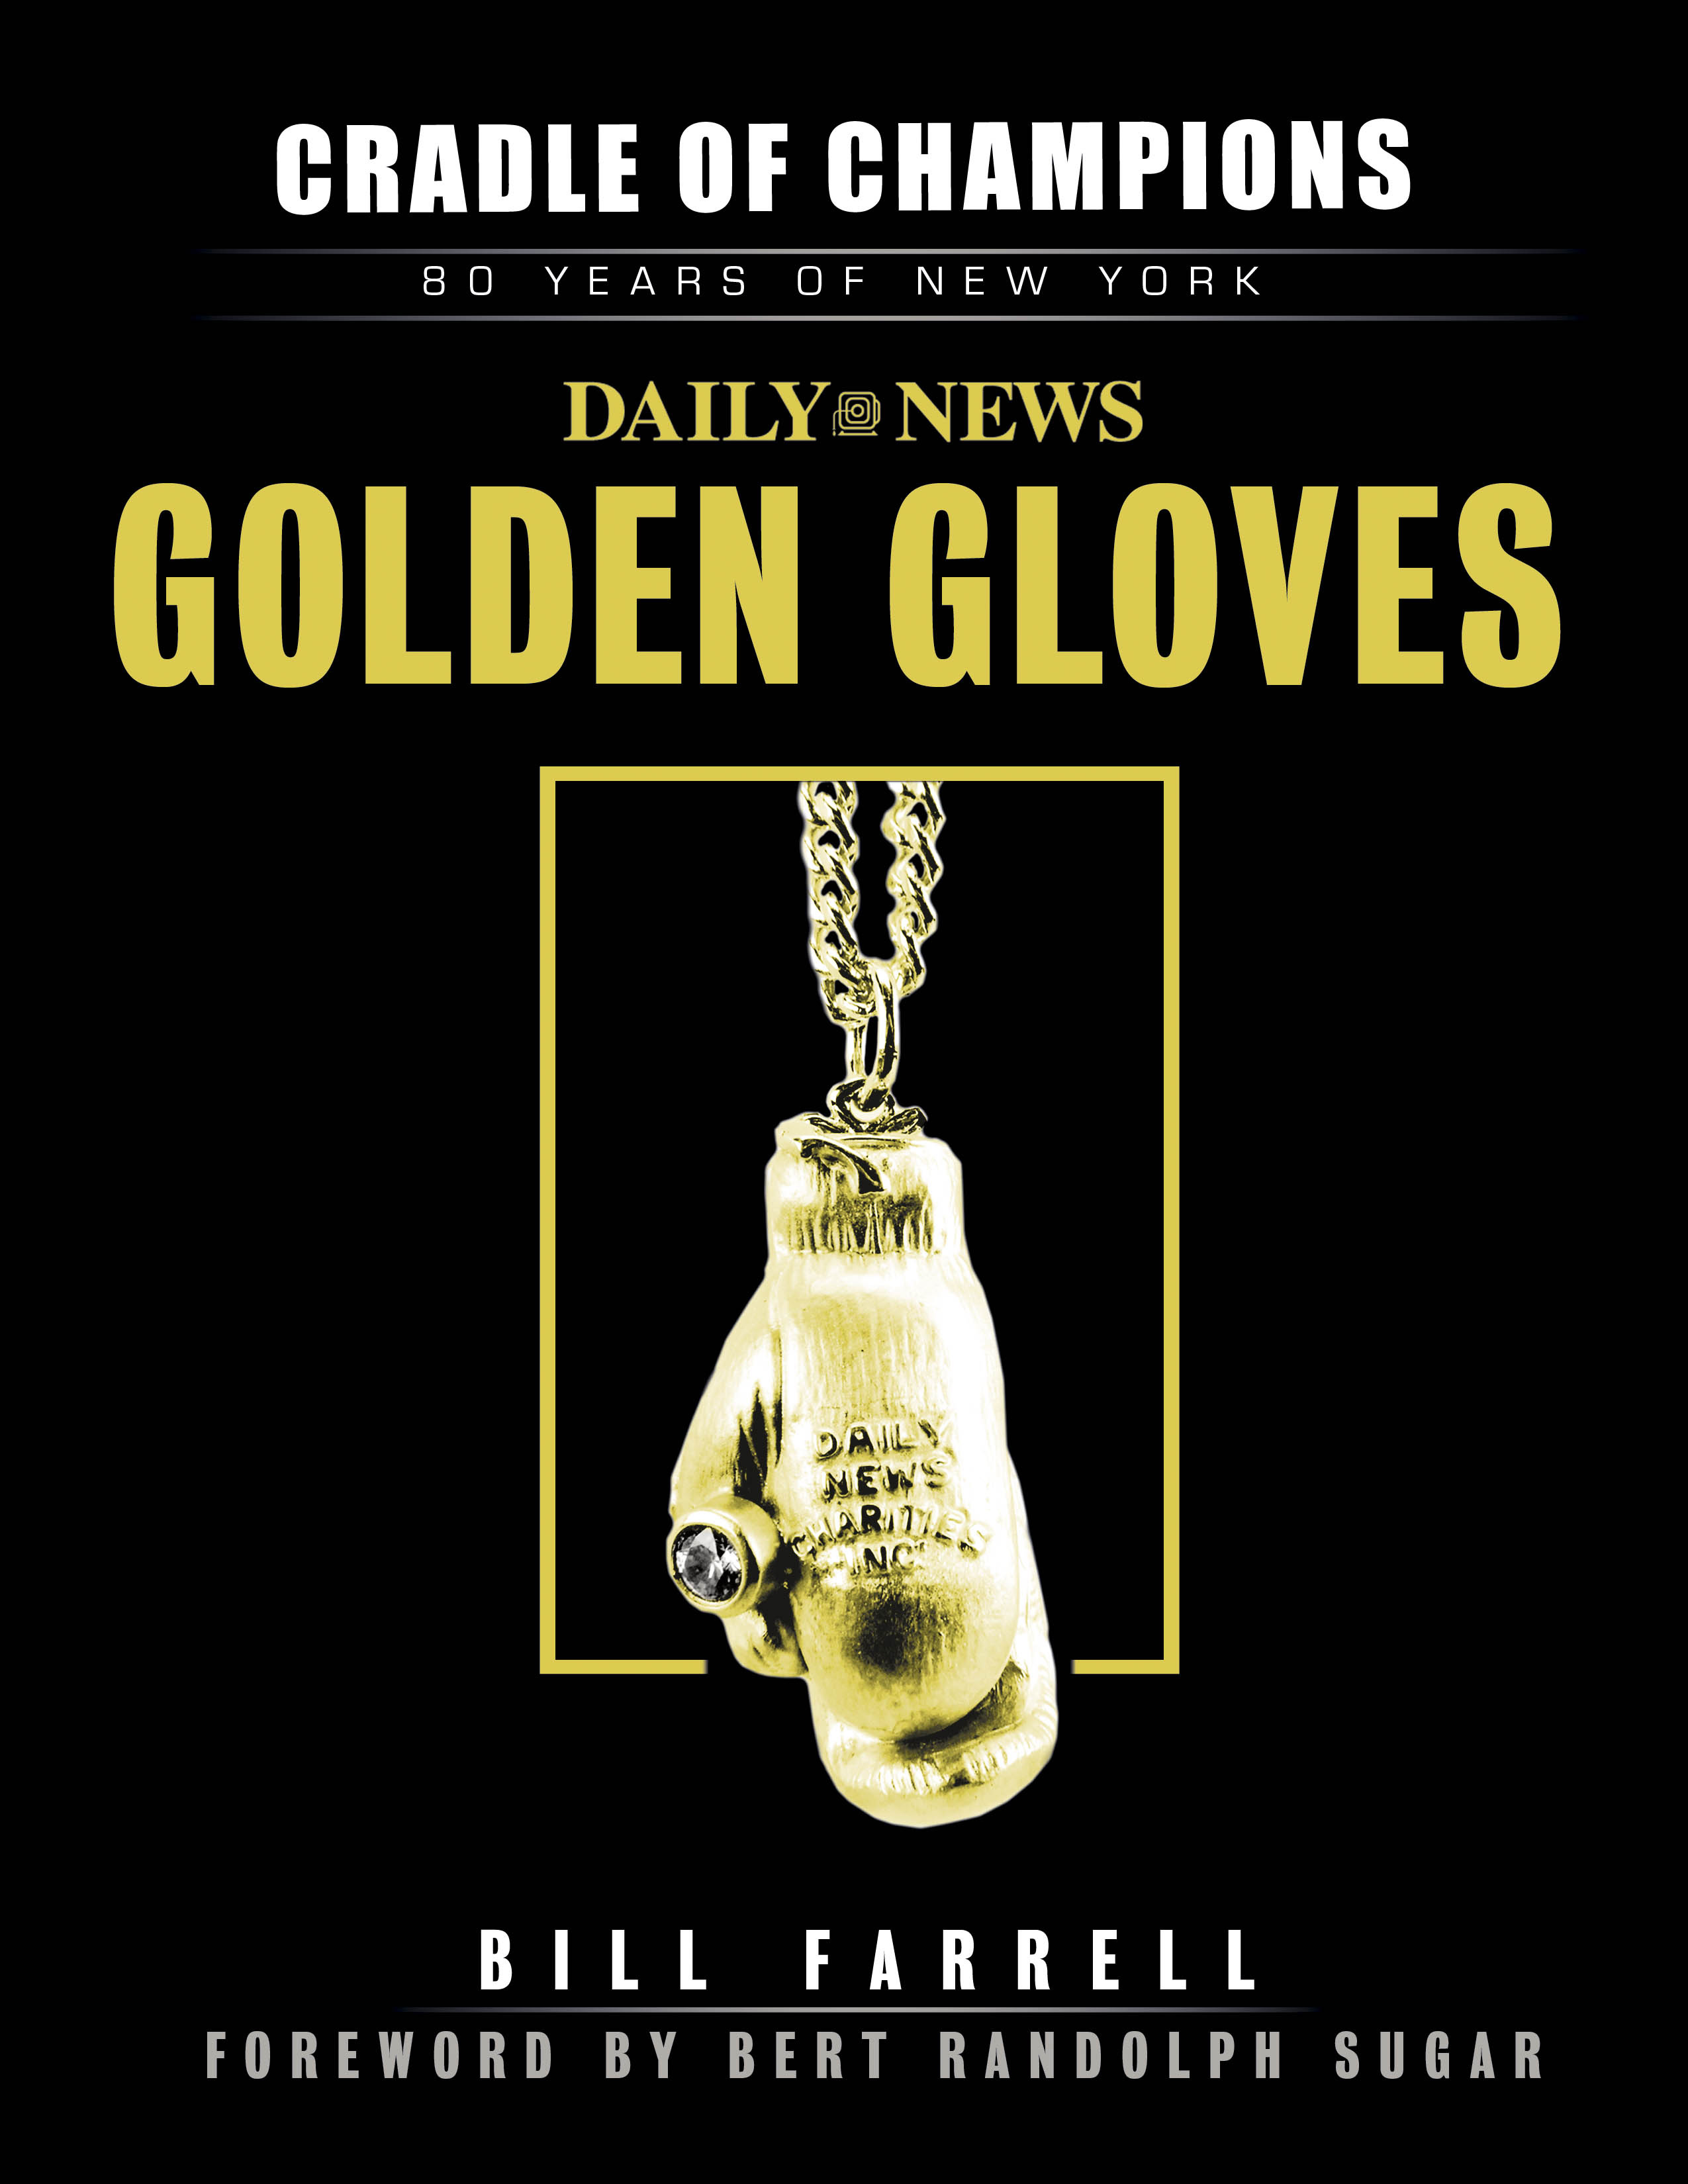 cradle of champions The Daily News Golden Gloves amateur boxing tournament has been an ...